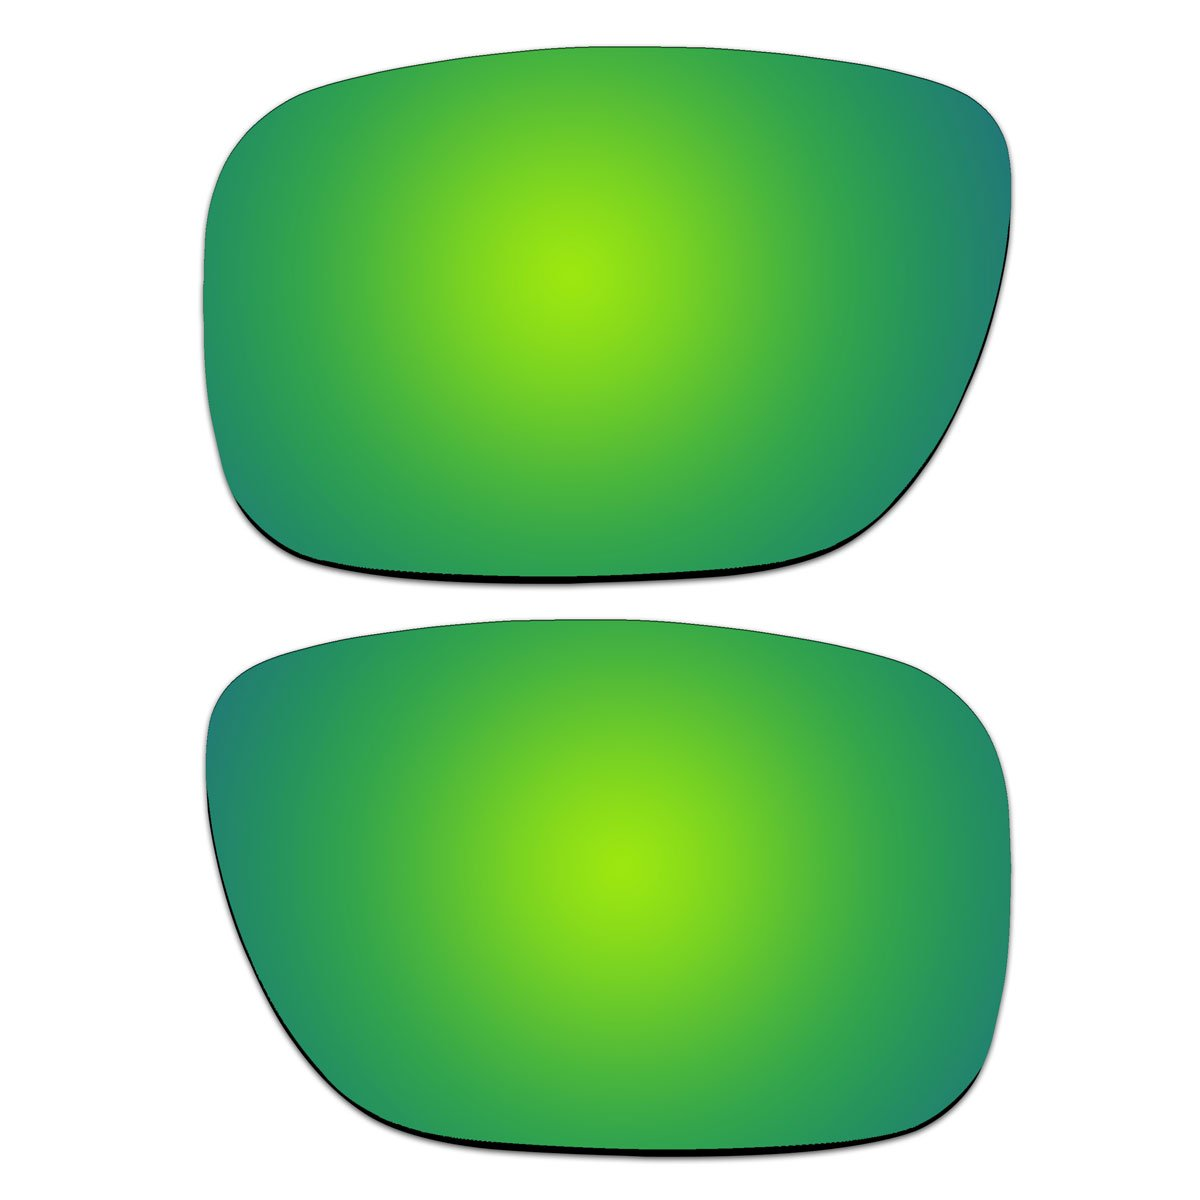 2af5b12f8b Amazon.com  ACOMPATIBLE Replacement Emerald Green Polarized Lenses for  Oakley Holbrook Sunglasses OO9102  Sports   Outdoors